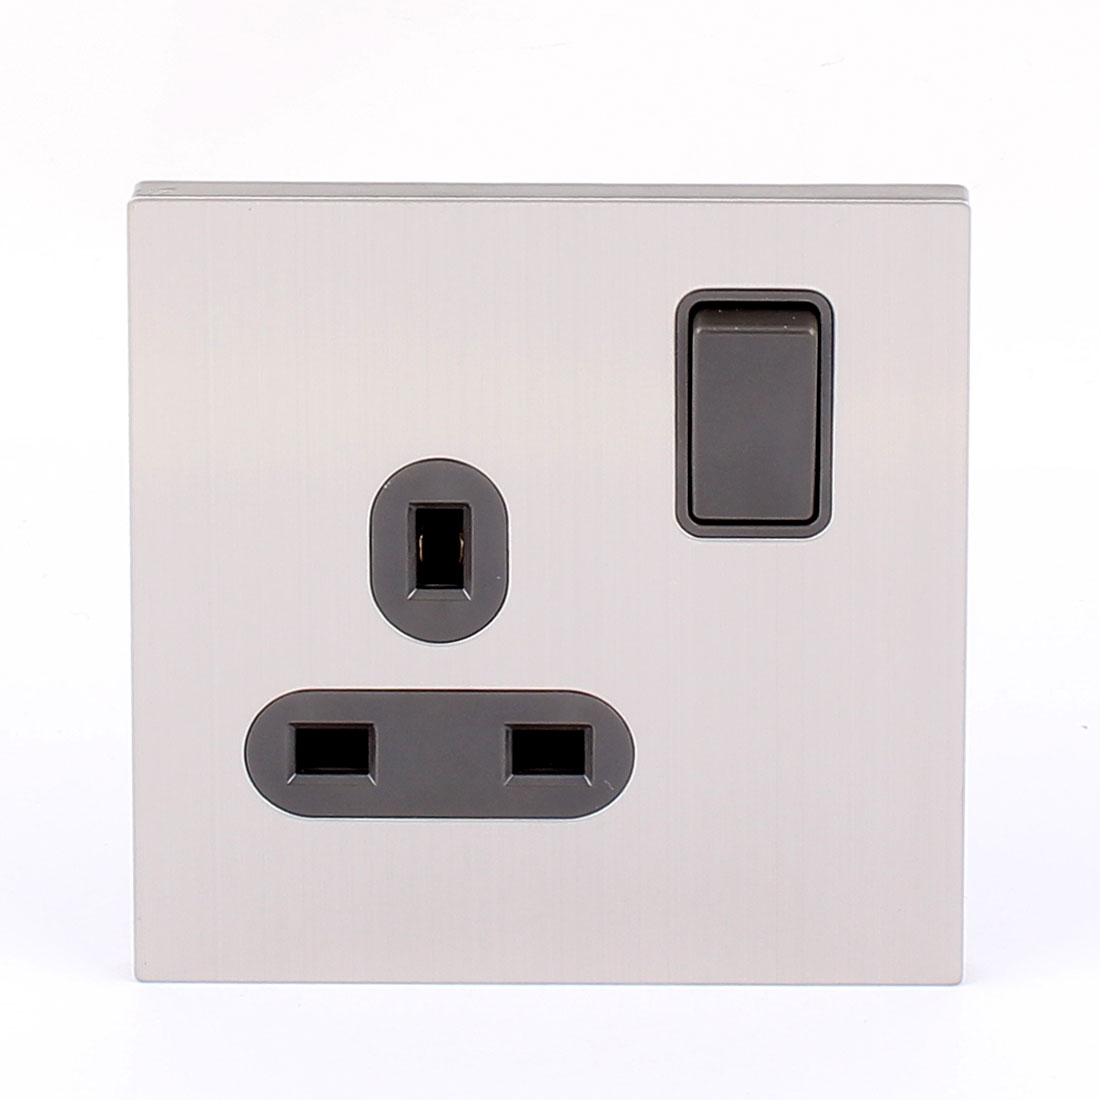 13A 250V Rectangle Pin Black ON/OFF Switched UK Standard Wall Mounted Socket